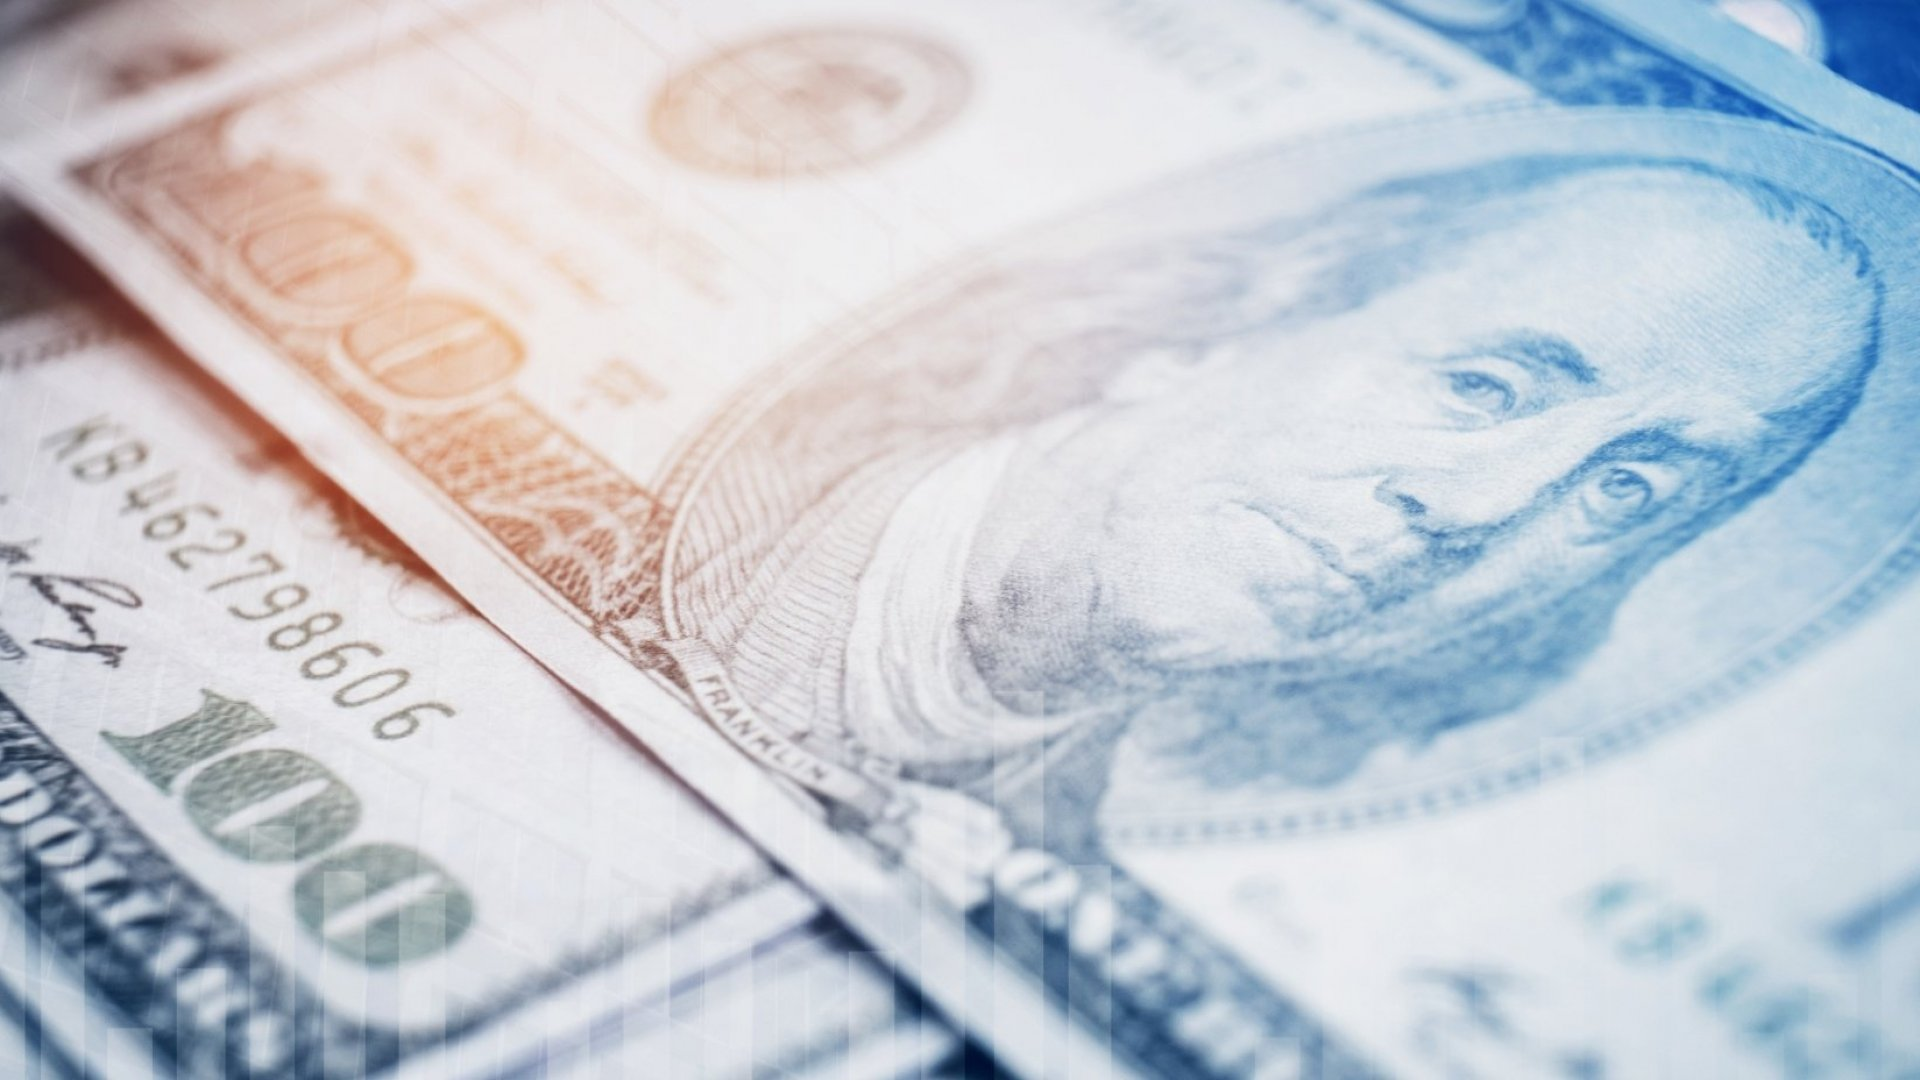 The Stimulus Bill Lets You Tap Into Your 401(k) or IRA Penalty Free: What You Need to Know About the New Retirement Account Loan and Distribution Rules